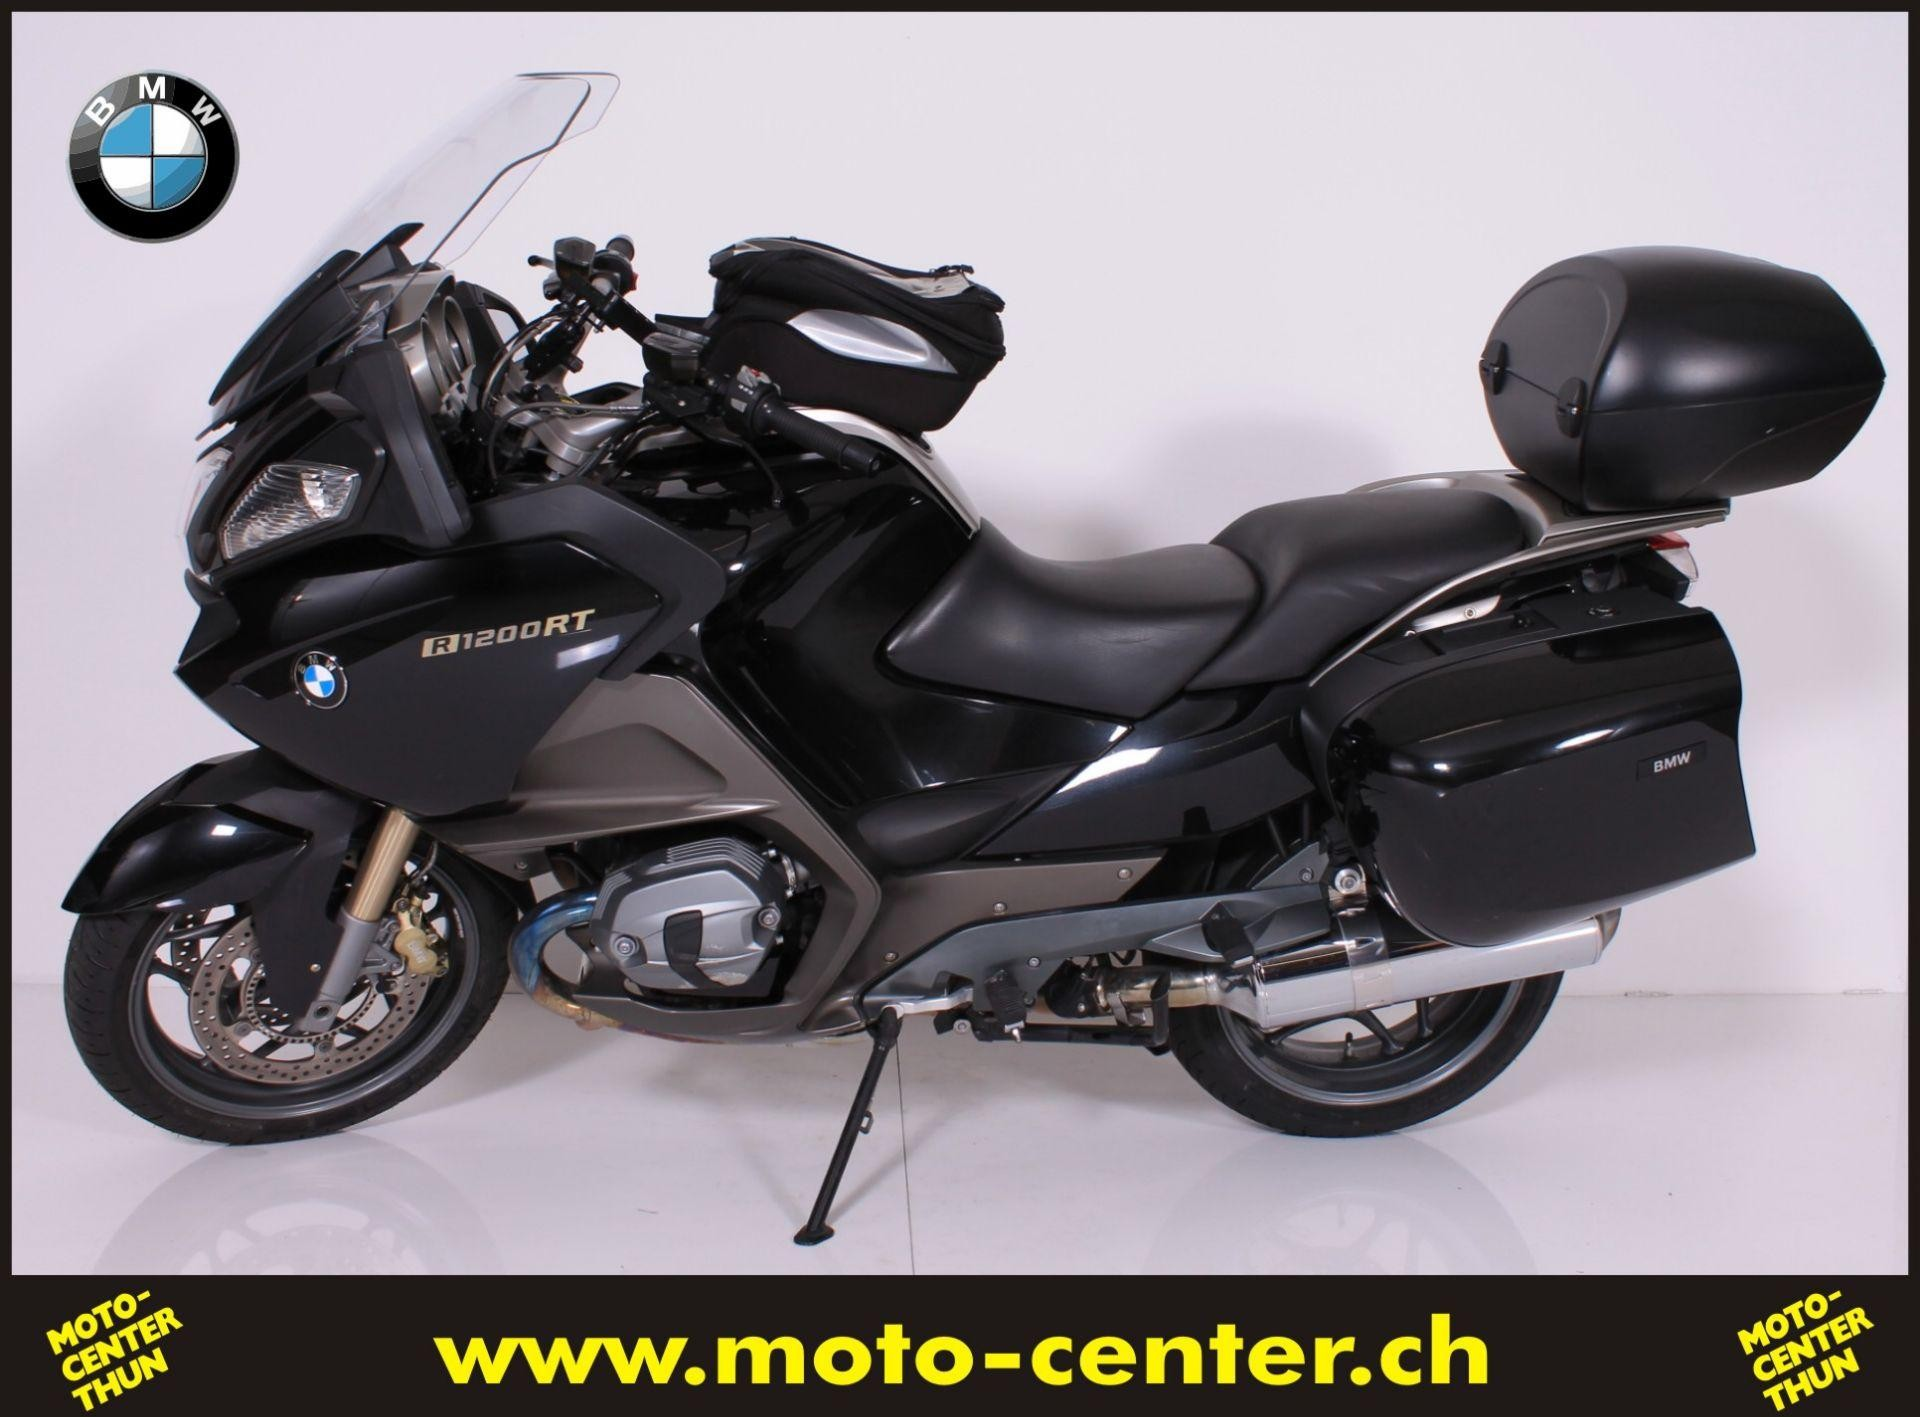 moto occasions acheter bmw r 1200 rt abs moto center thun steffisburg. Black Bedroom Furniture Sets. Home Design Ideas